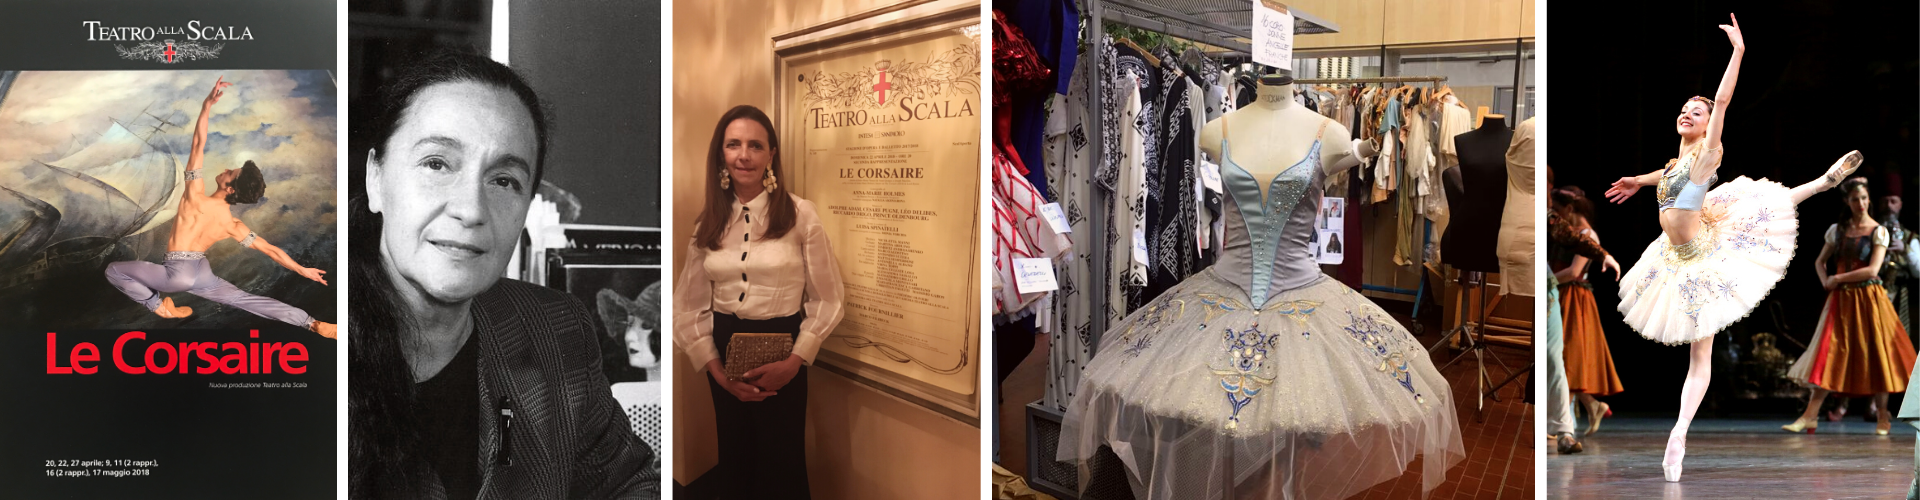 THE FIRST OF THE BALLET LE CORSAIRE AT THE LA SCALA THEATER IN MILAN. KATYA DESIGNED THE DECORATIONS AND EMBROIDERIES FOR THE BALLET COSTUMES IN COLLABORATION WITH THE SET DESIGNER AND COSTUME DESIGNER LUISA SPINATELLI. APRIL / 2018